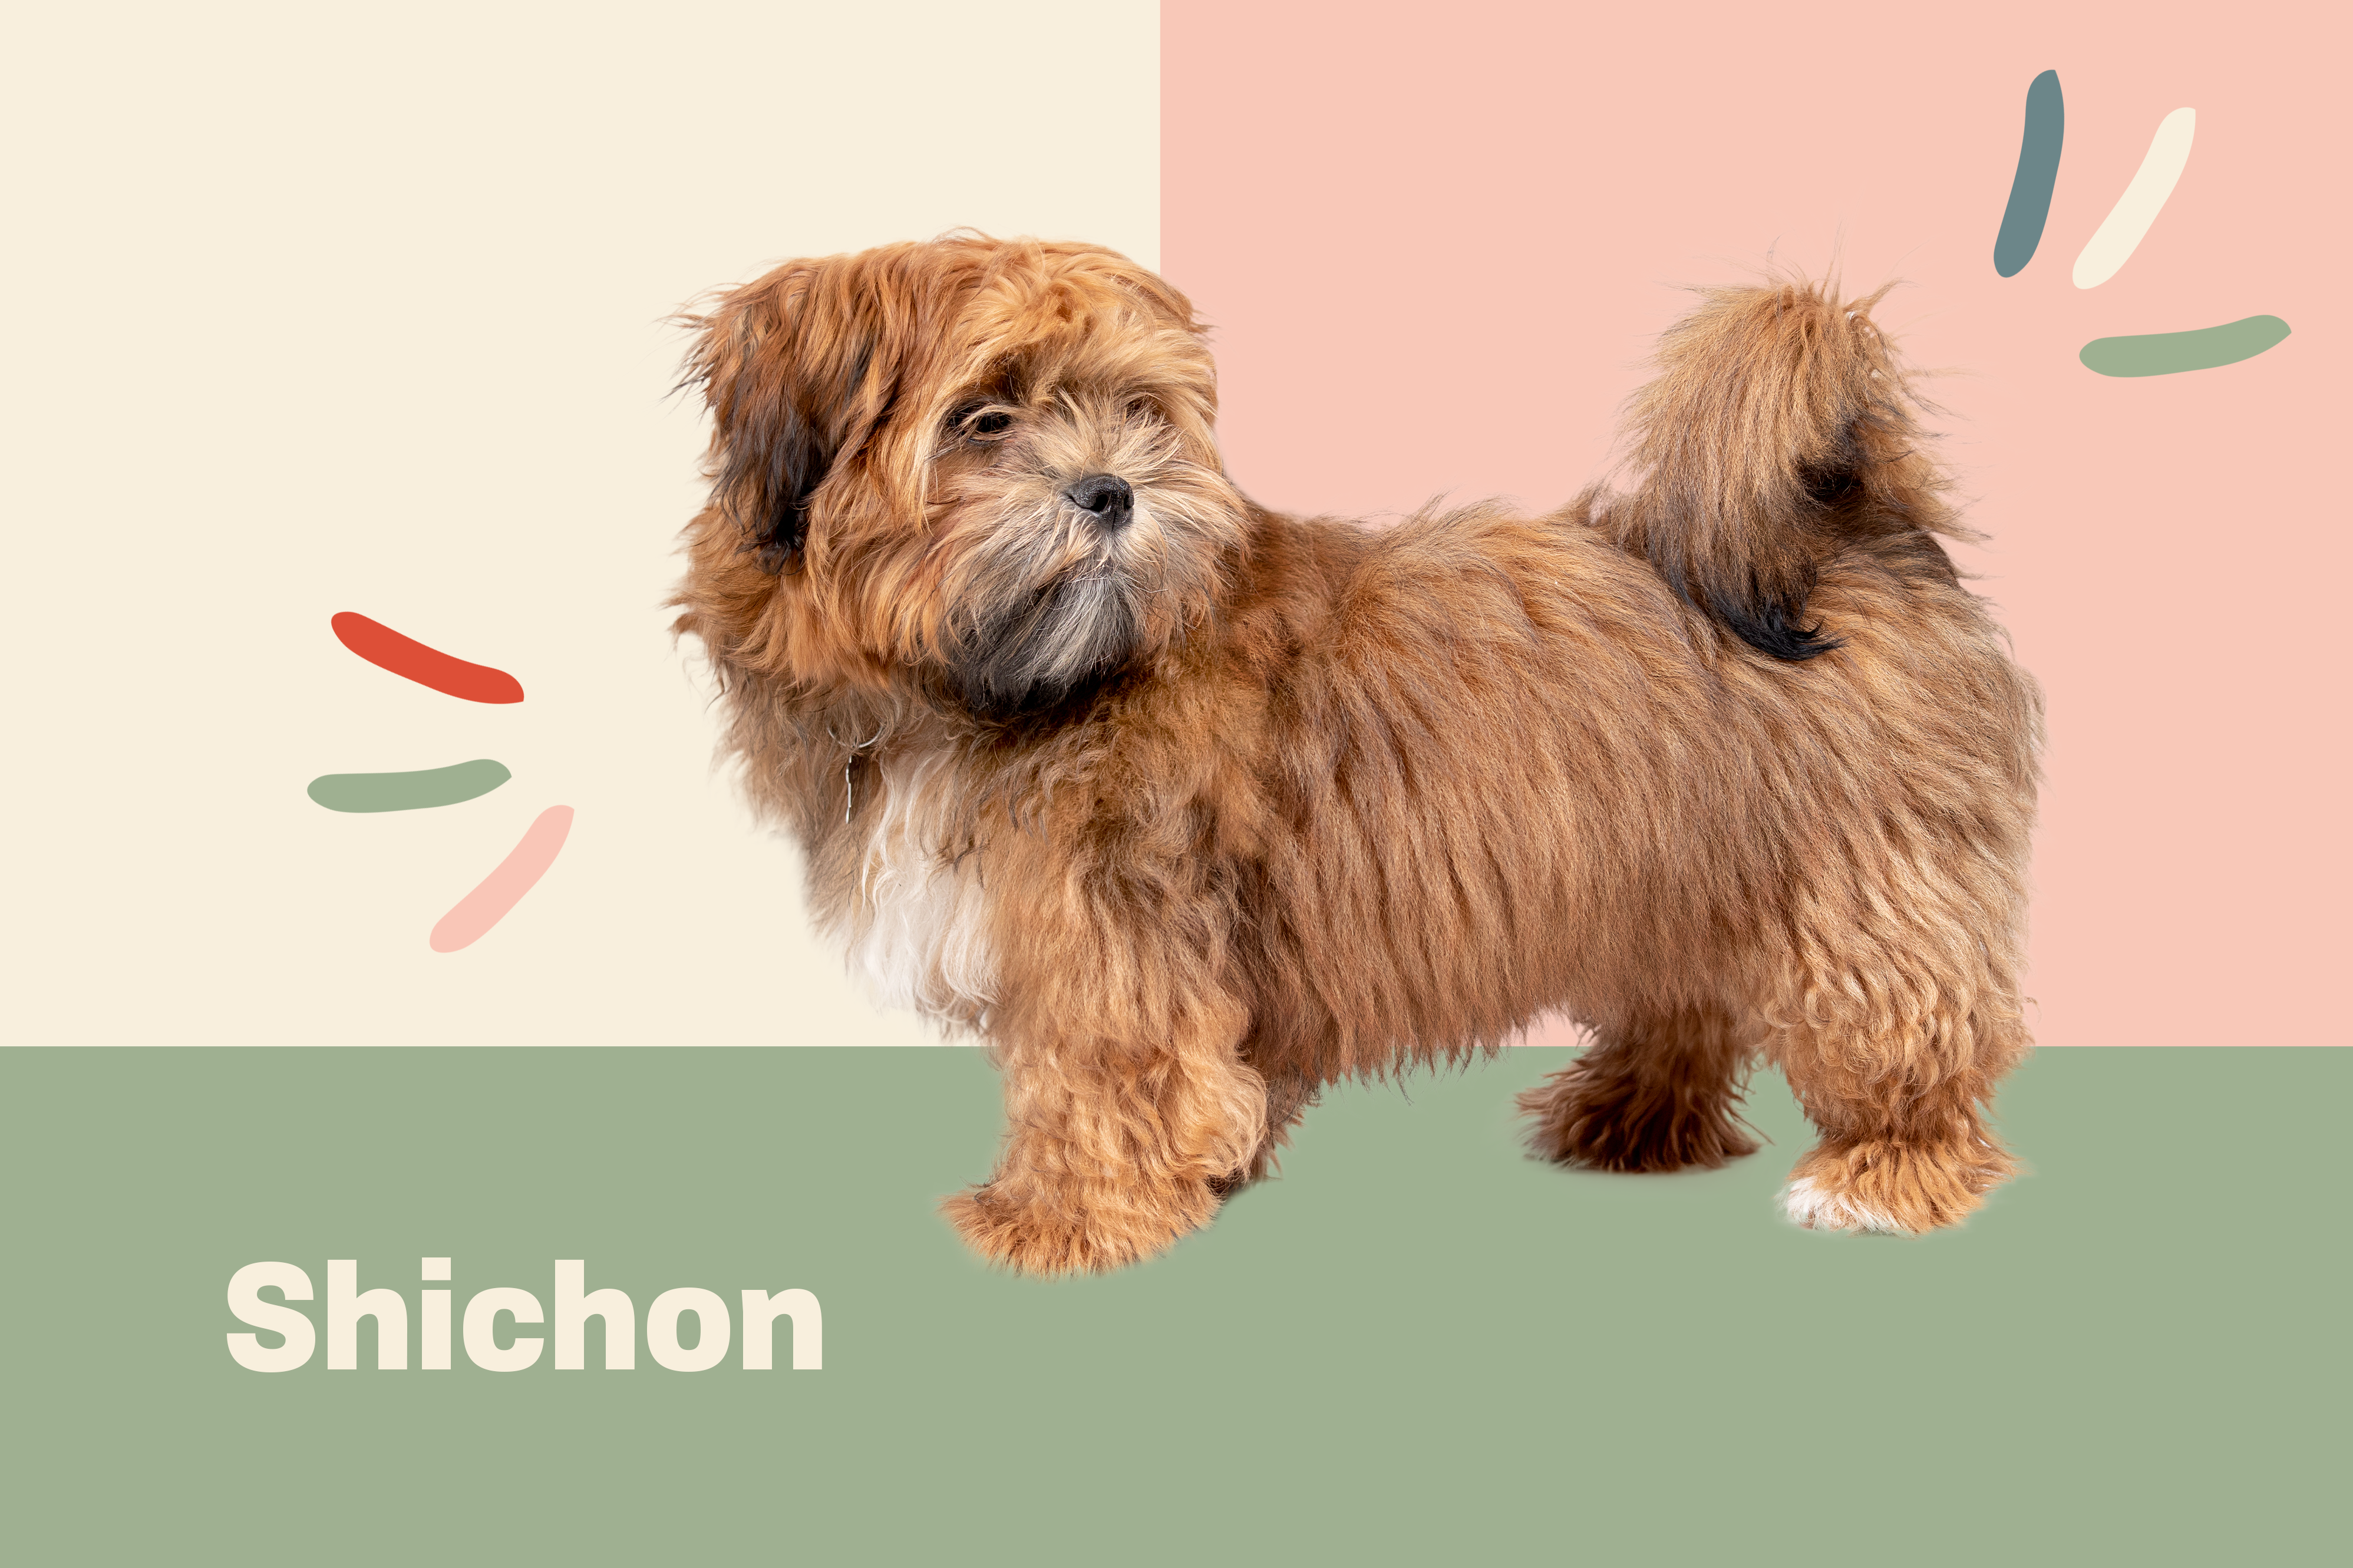 shichon dog breed profile treatment brown dog on a pink, cream and green background